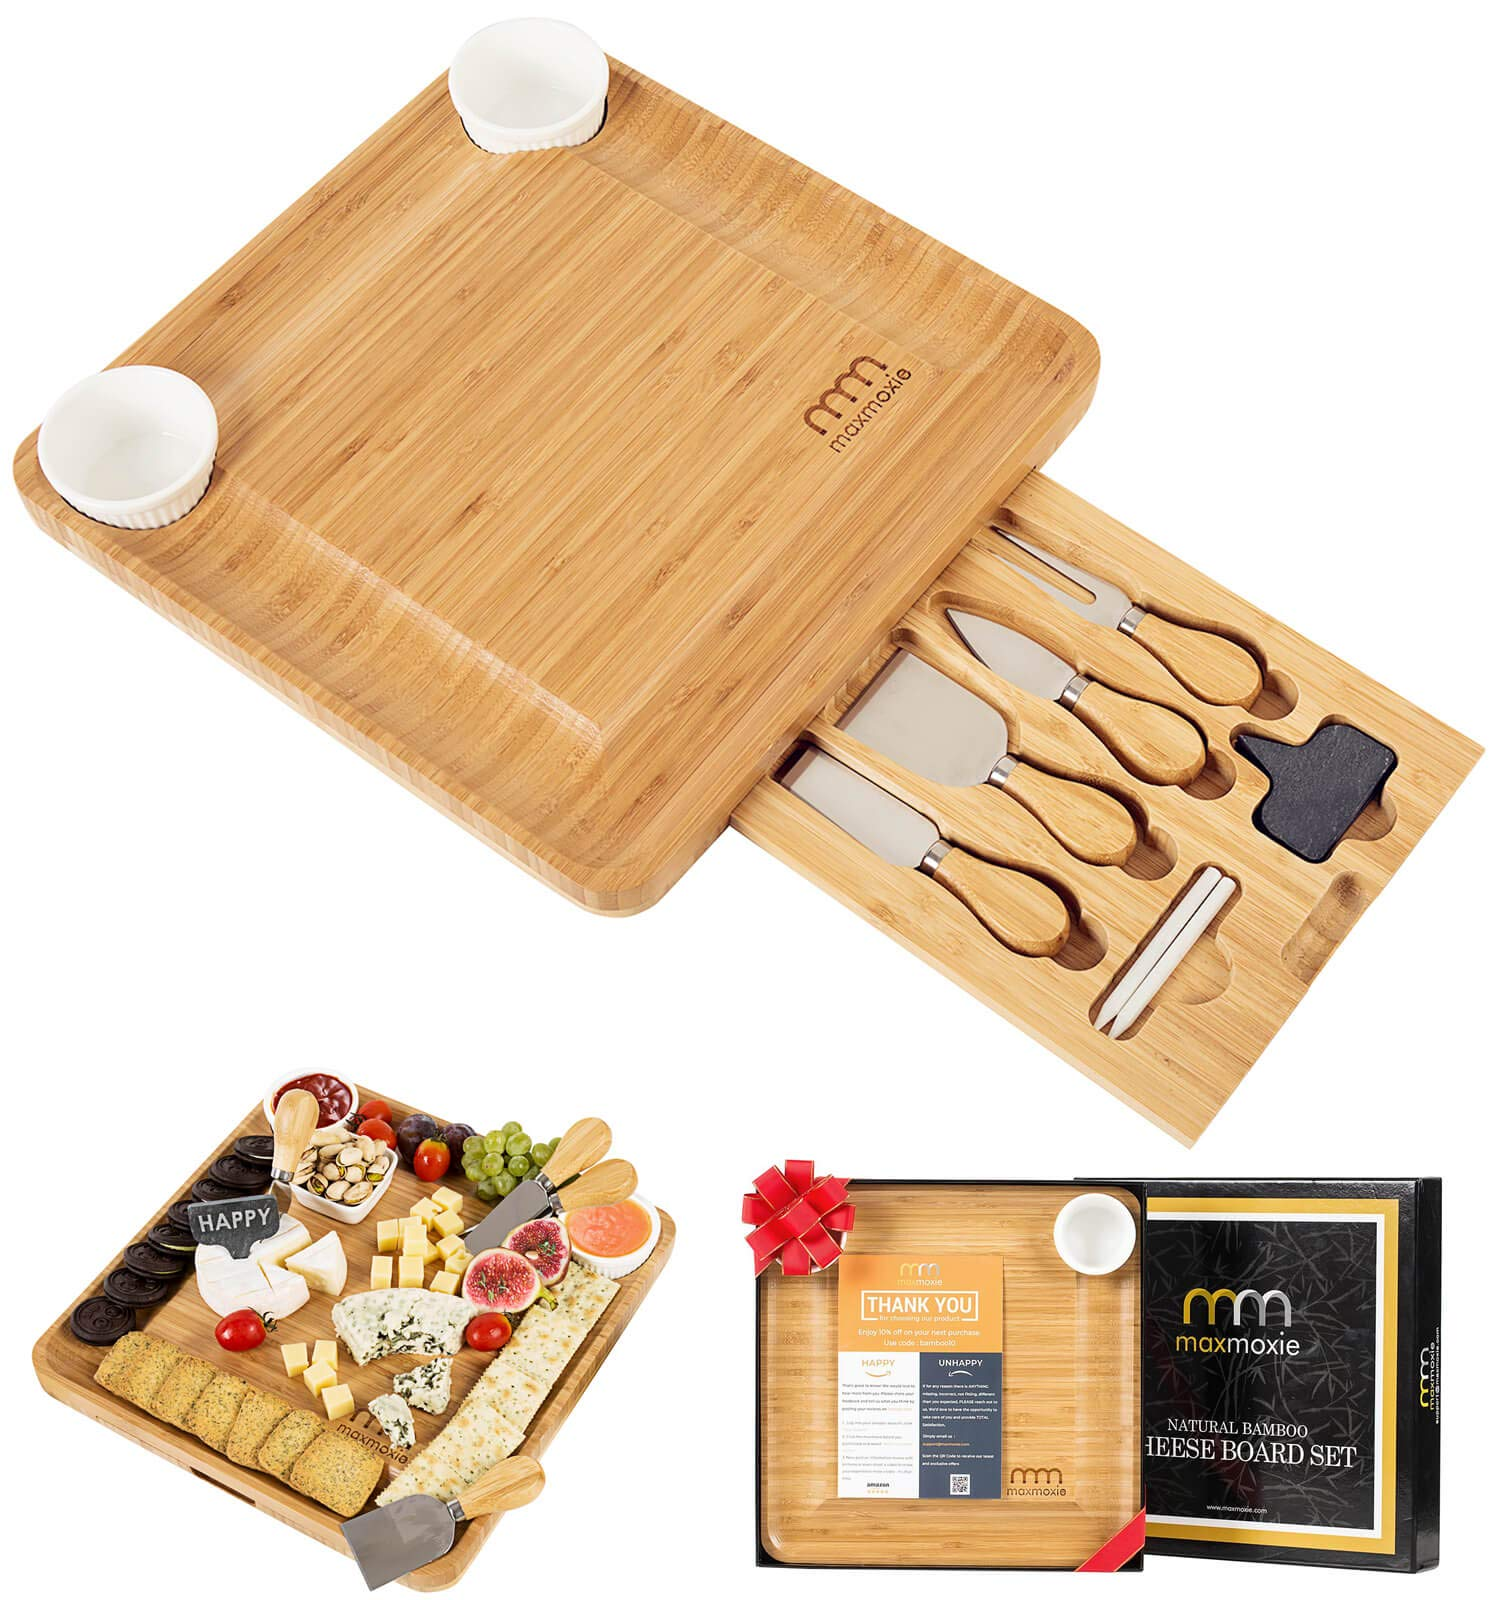 Cheese Board and Cutlery Set (Top Quality Elegant Packaging) Unique Bamboo Charcuterie Platter and Serving Tray for Wine, Cracker, Brie and Meat - Best Present for Mom, Hostess Valentine Birthday Gift by MaxMoxie